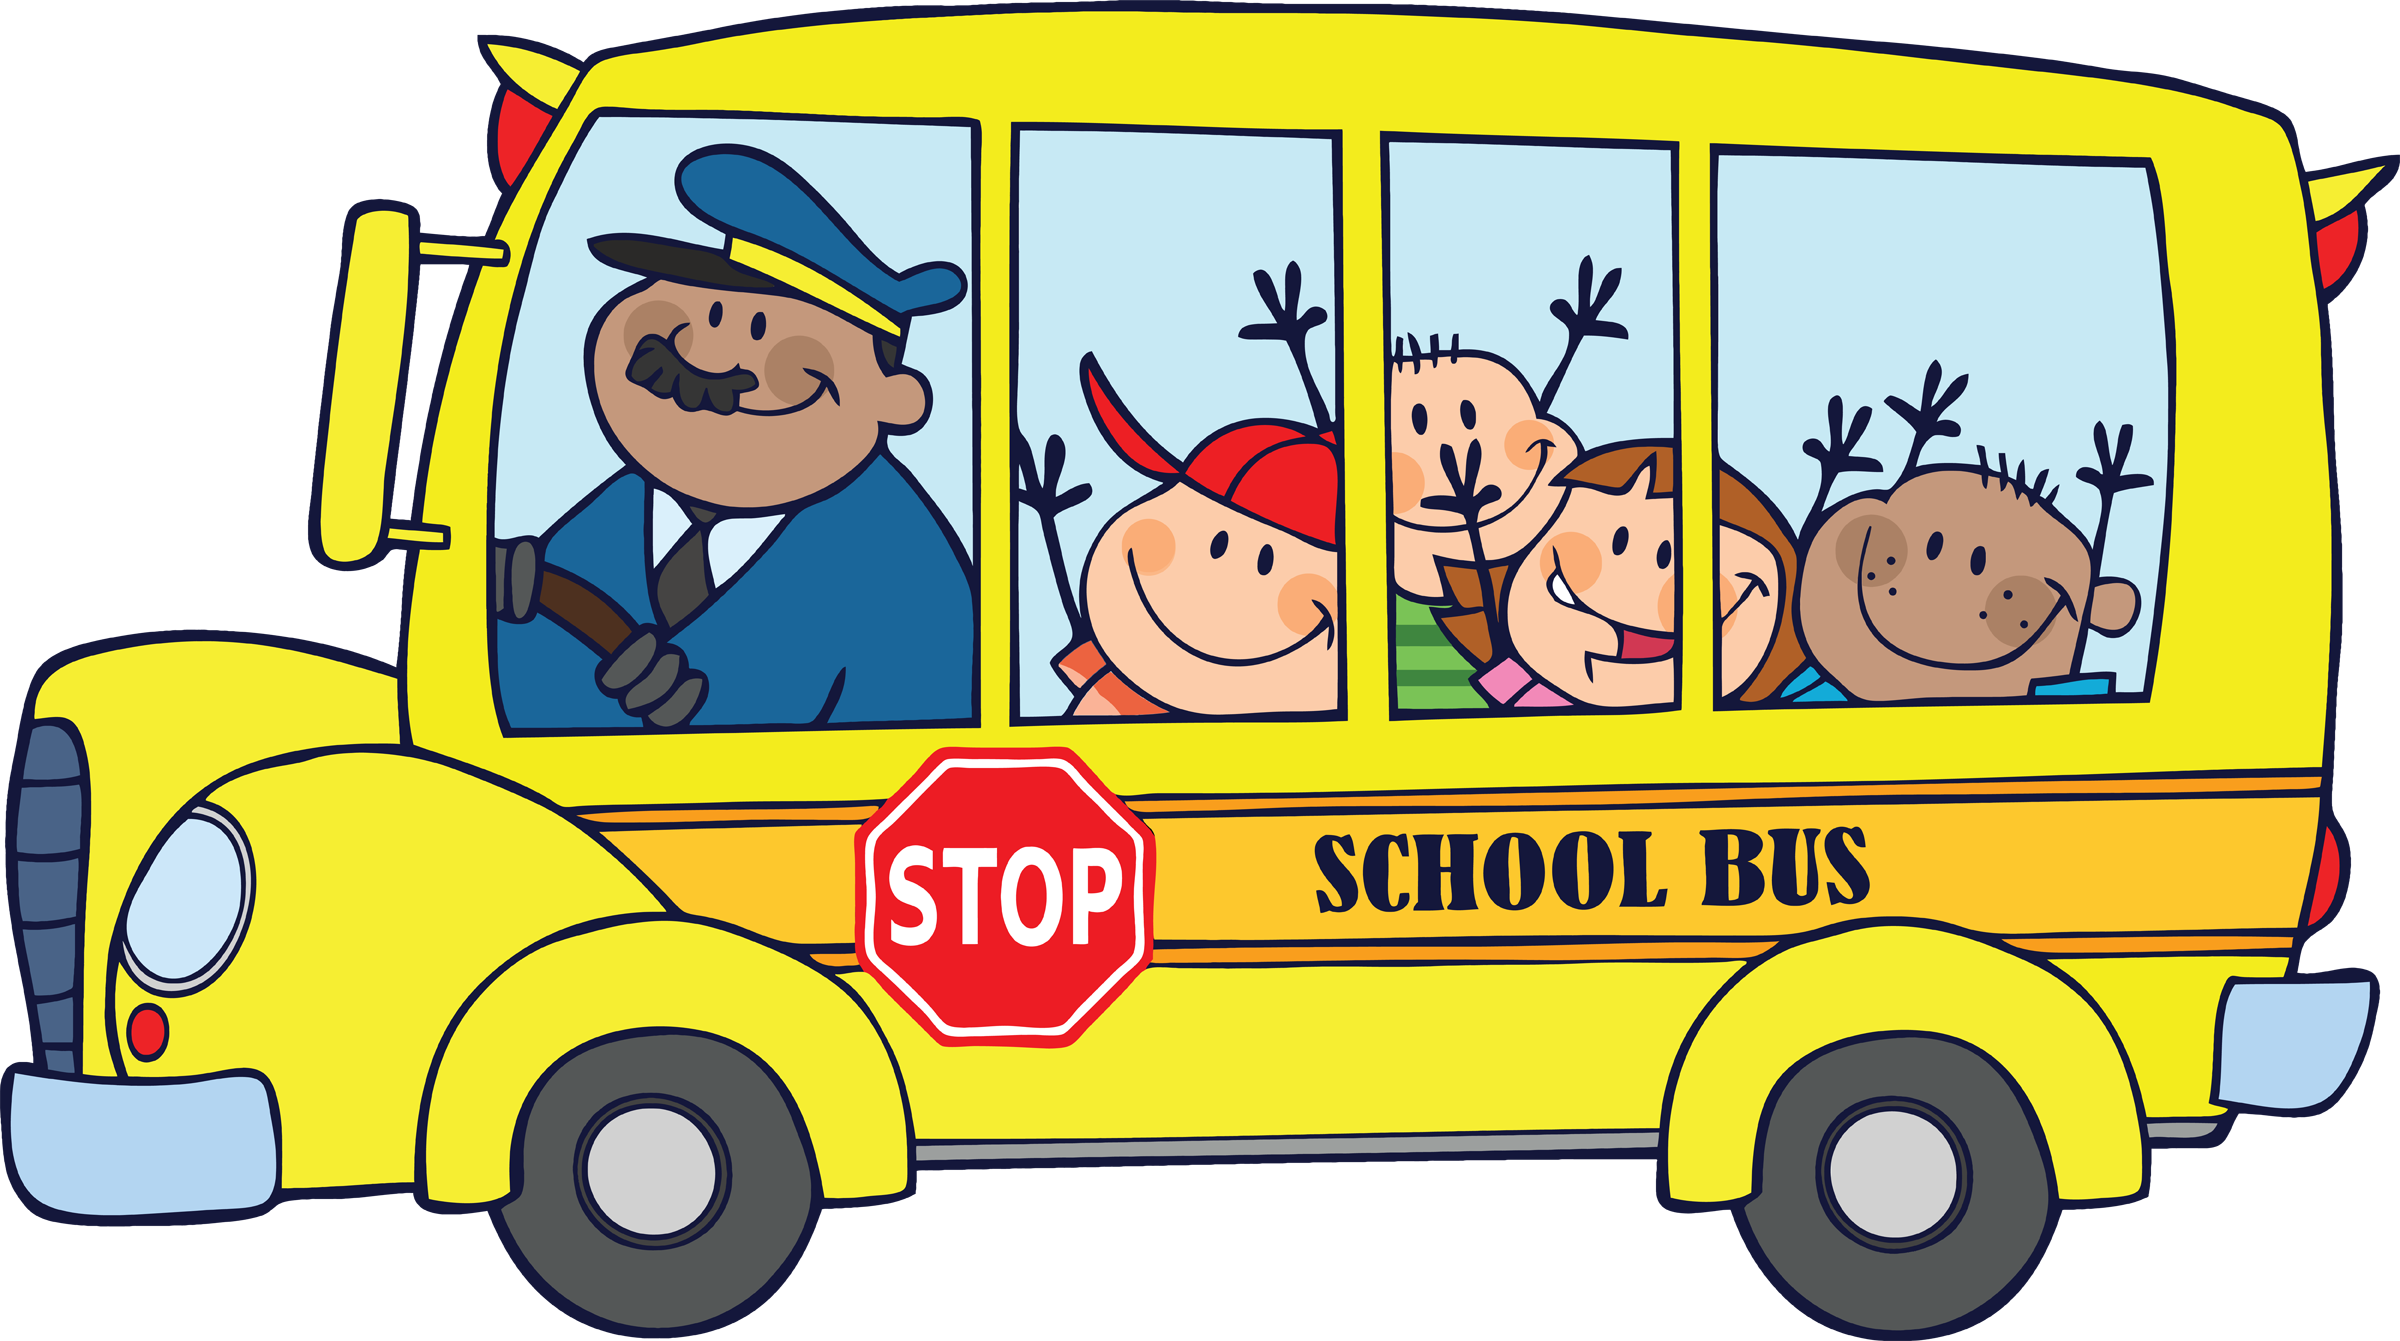 bus stop clipart at getdrawings com free for personal use bus stop rh getdrawings com